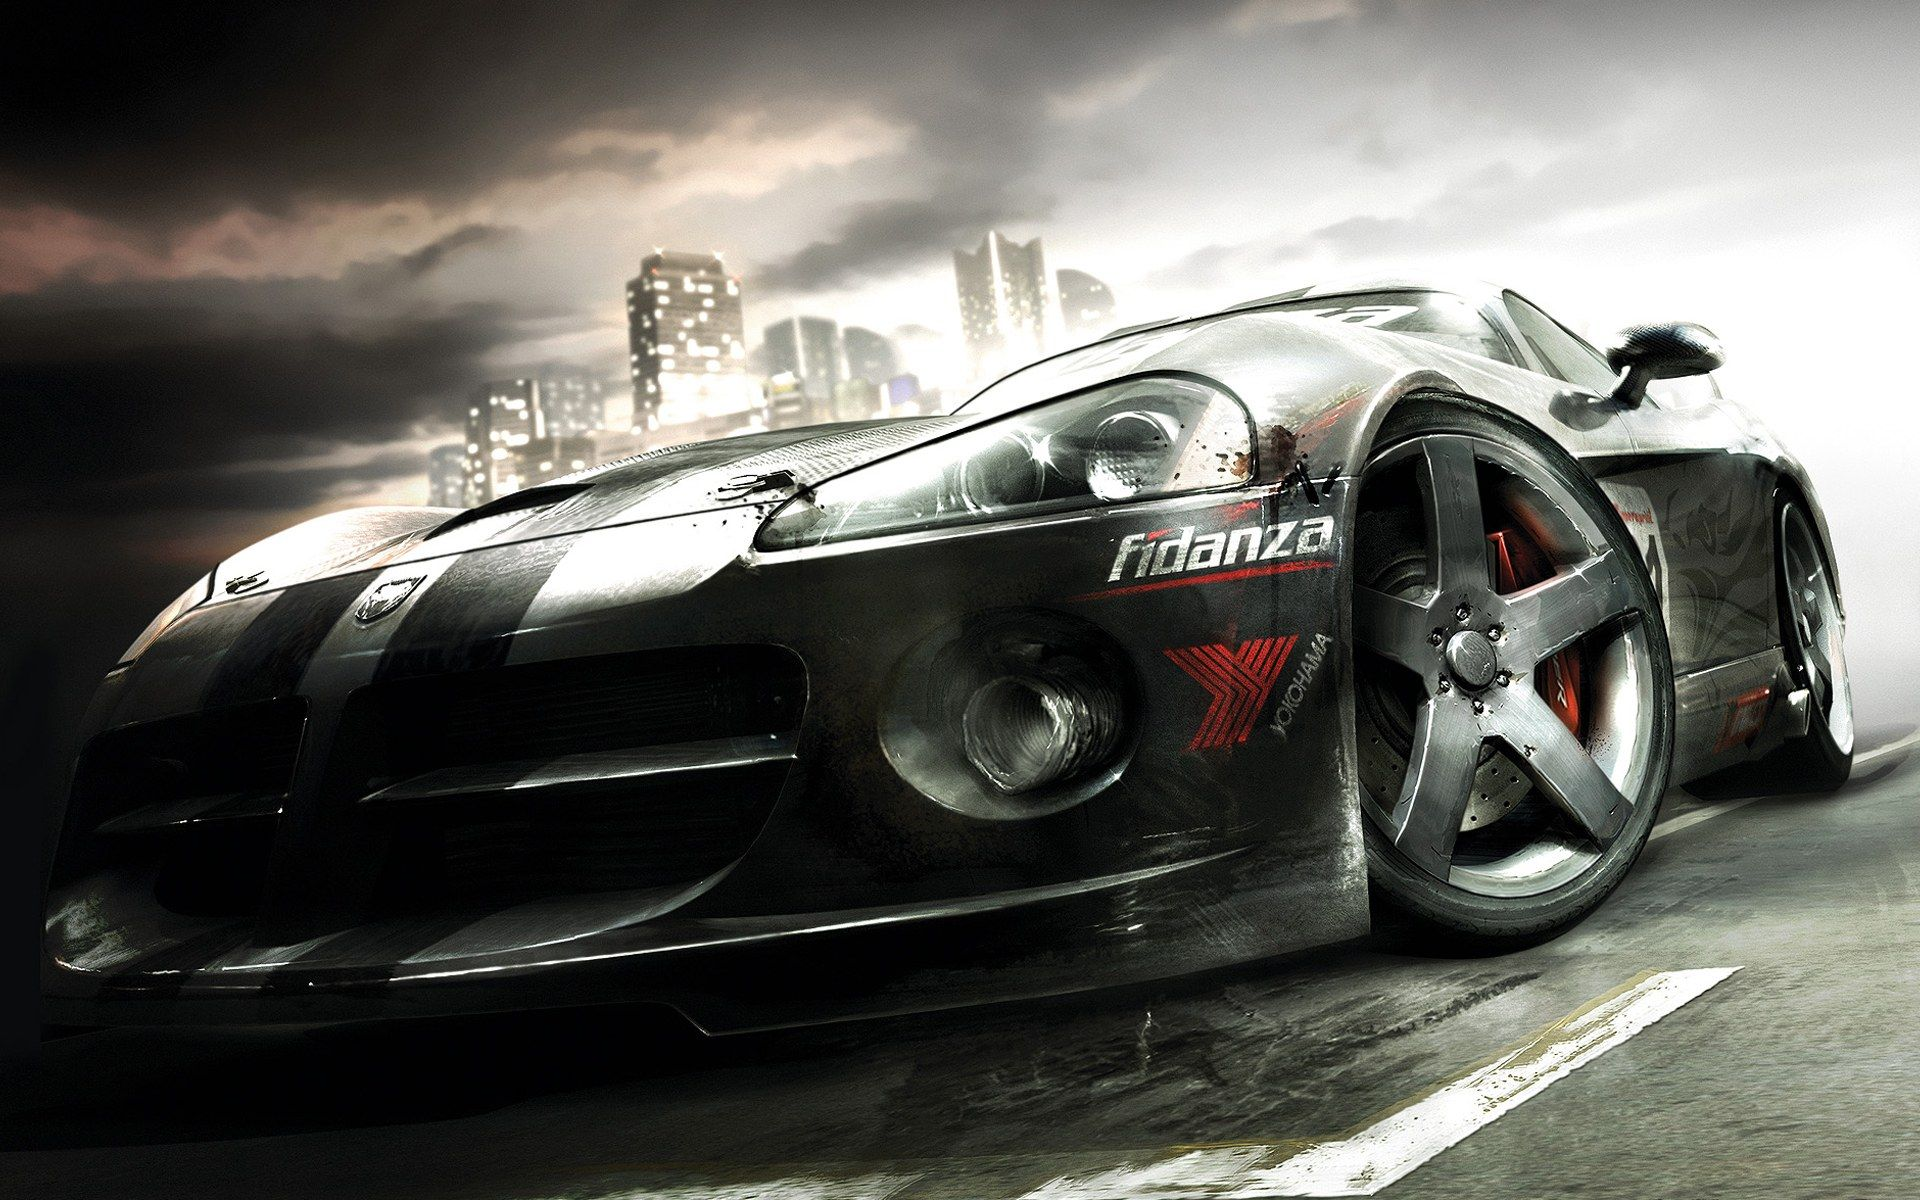 Car Wallpaper 1080p Vc5 Sports Car Wallpaper Cool Car Pictures Dodge Viper